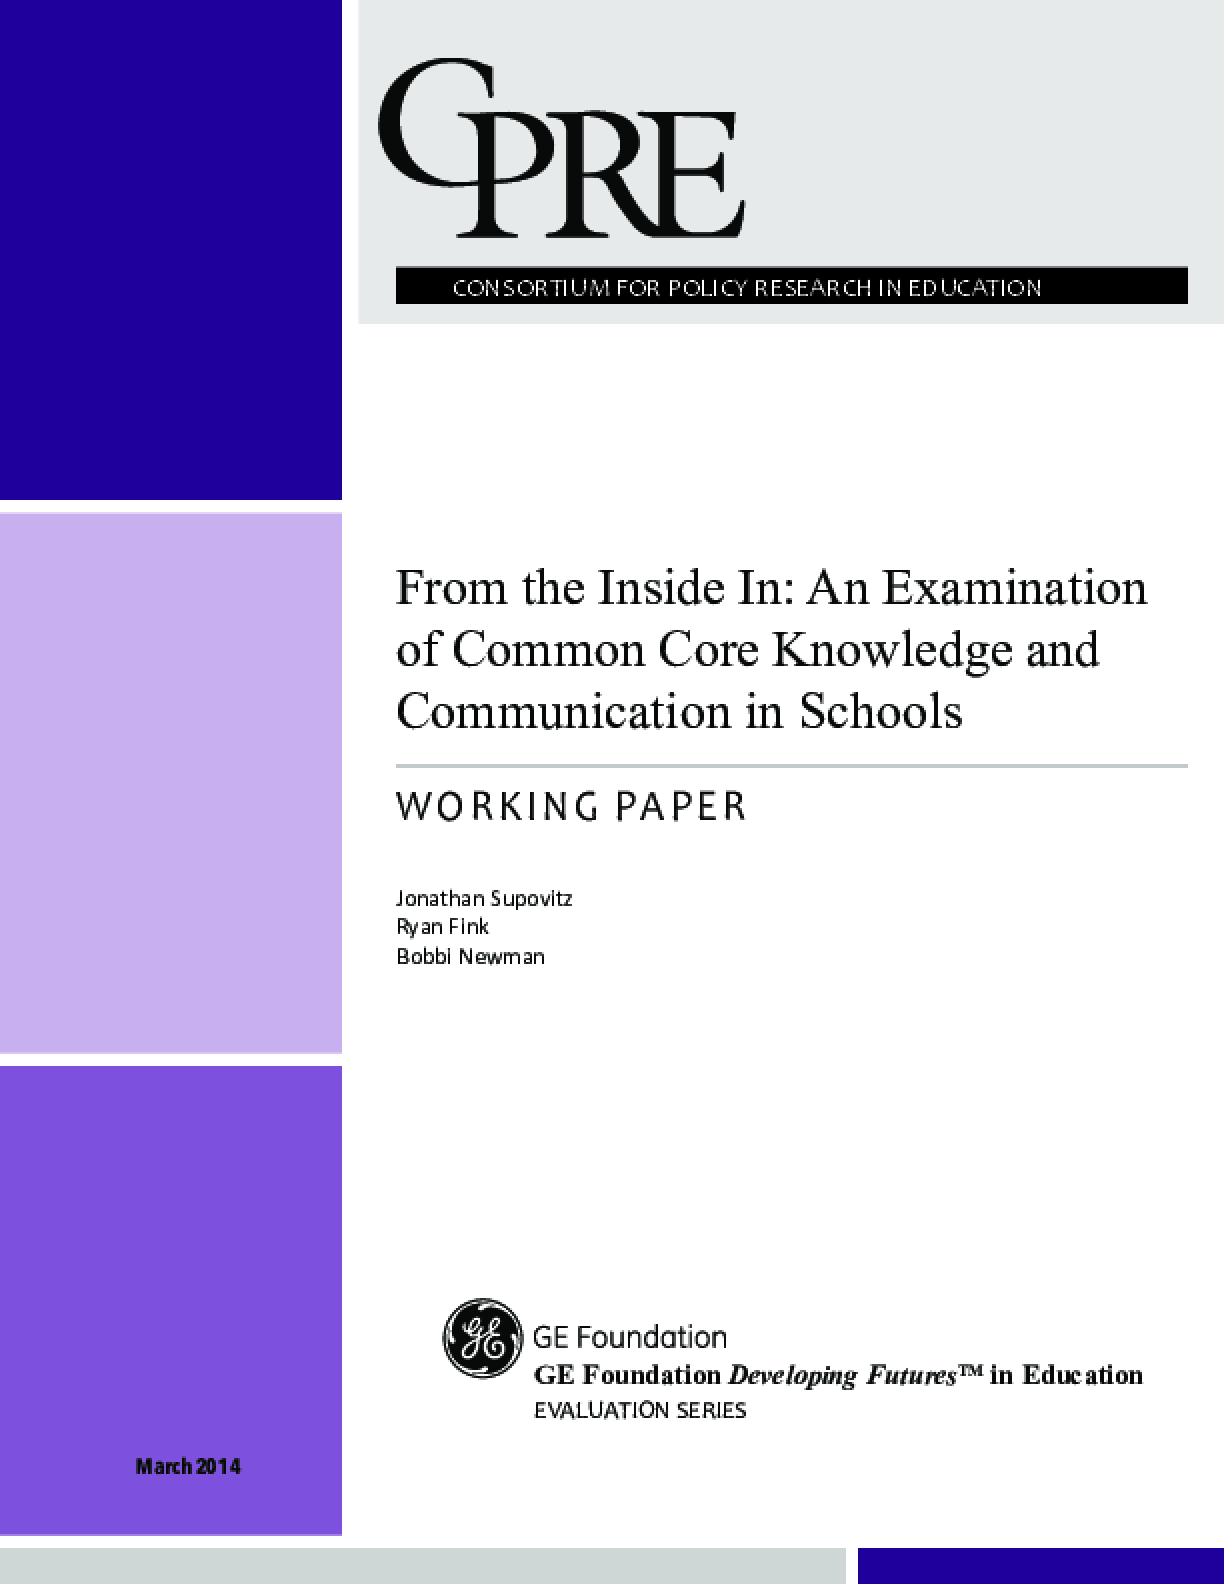 From the Inside In: An Examination of Common Core Knowledge & Communication in Schools